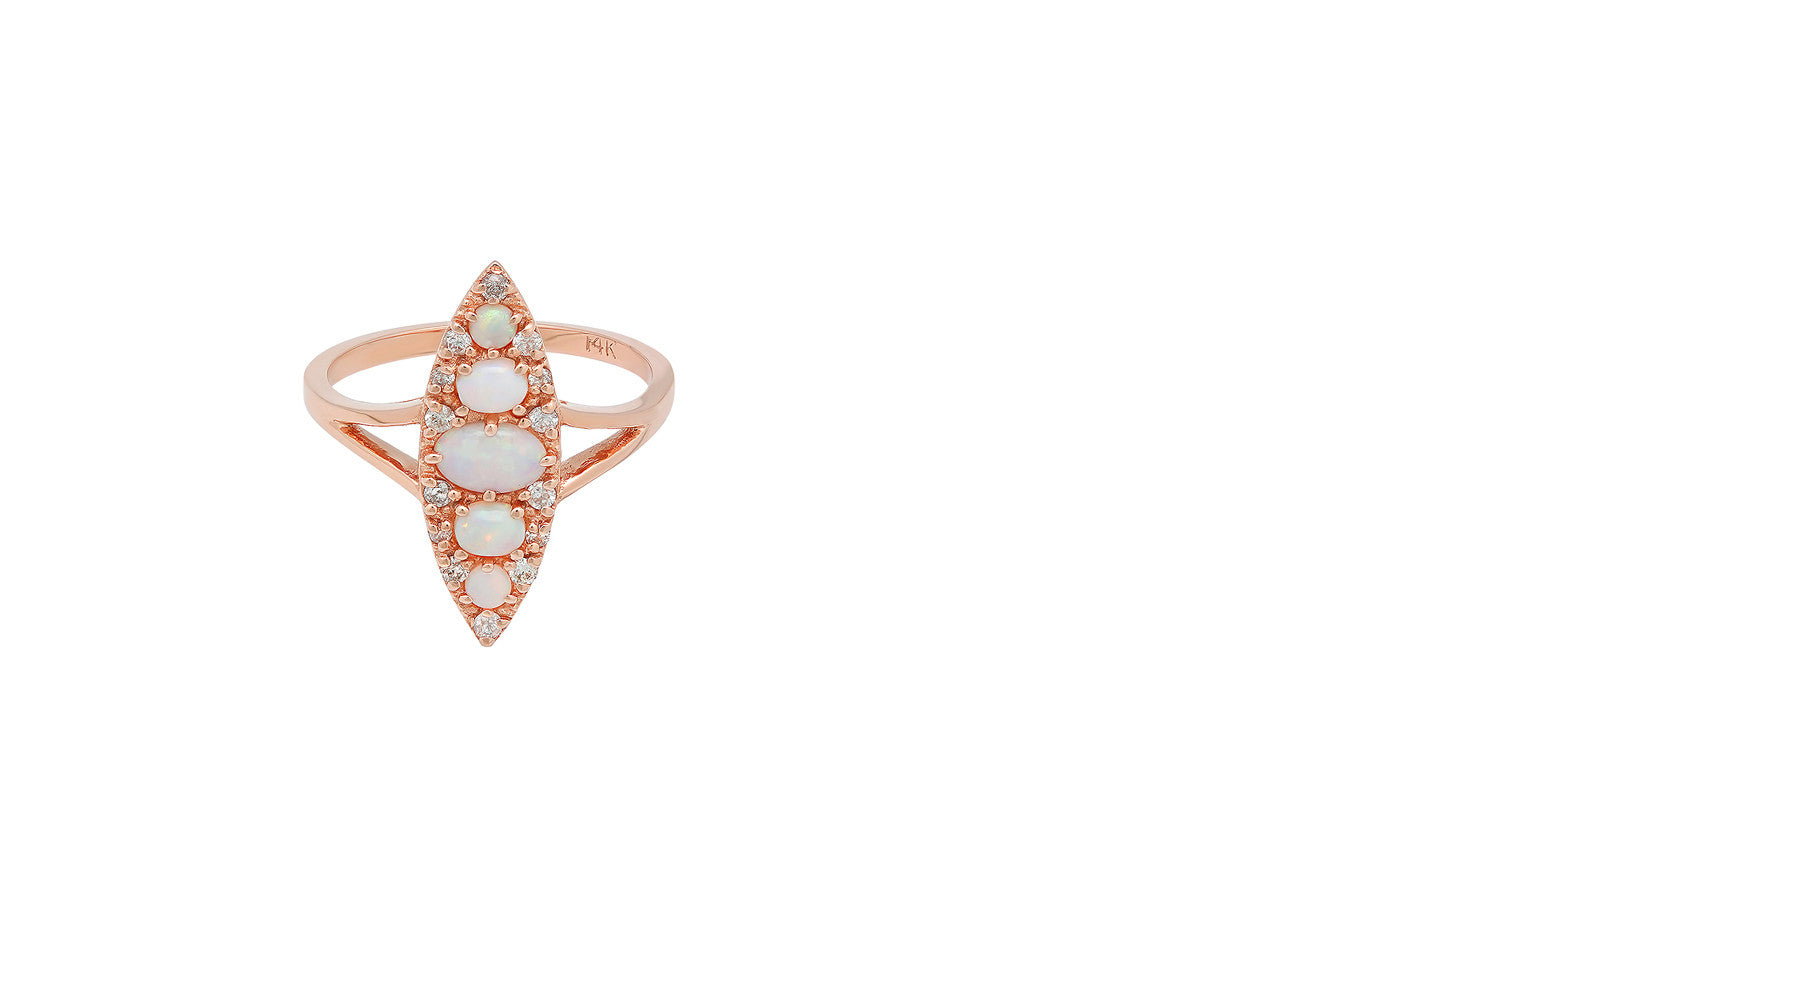 Stone Fox Bride x Iconery Opal Navette Ring